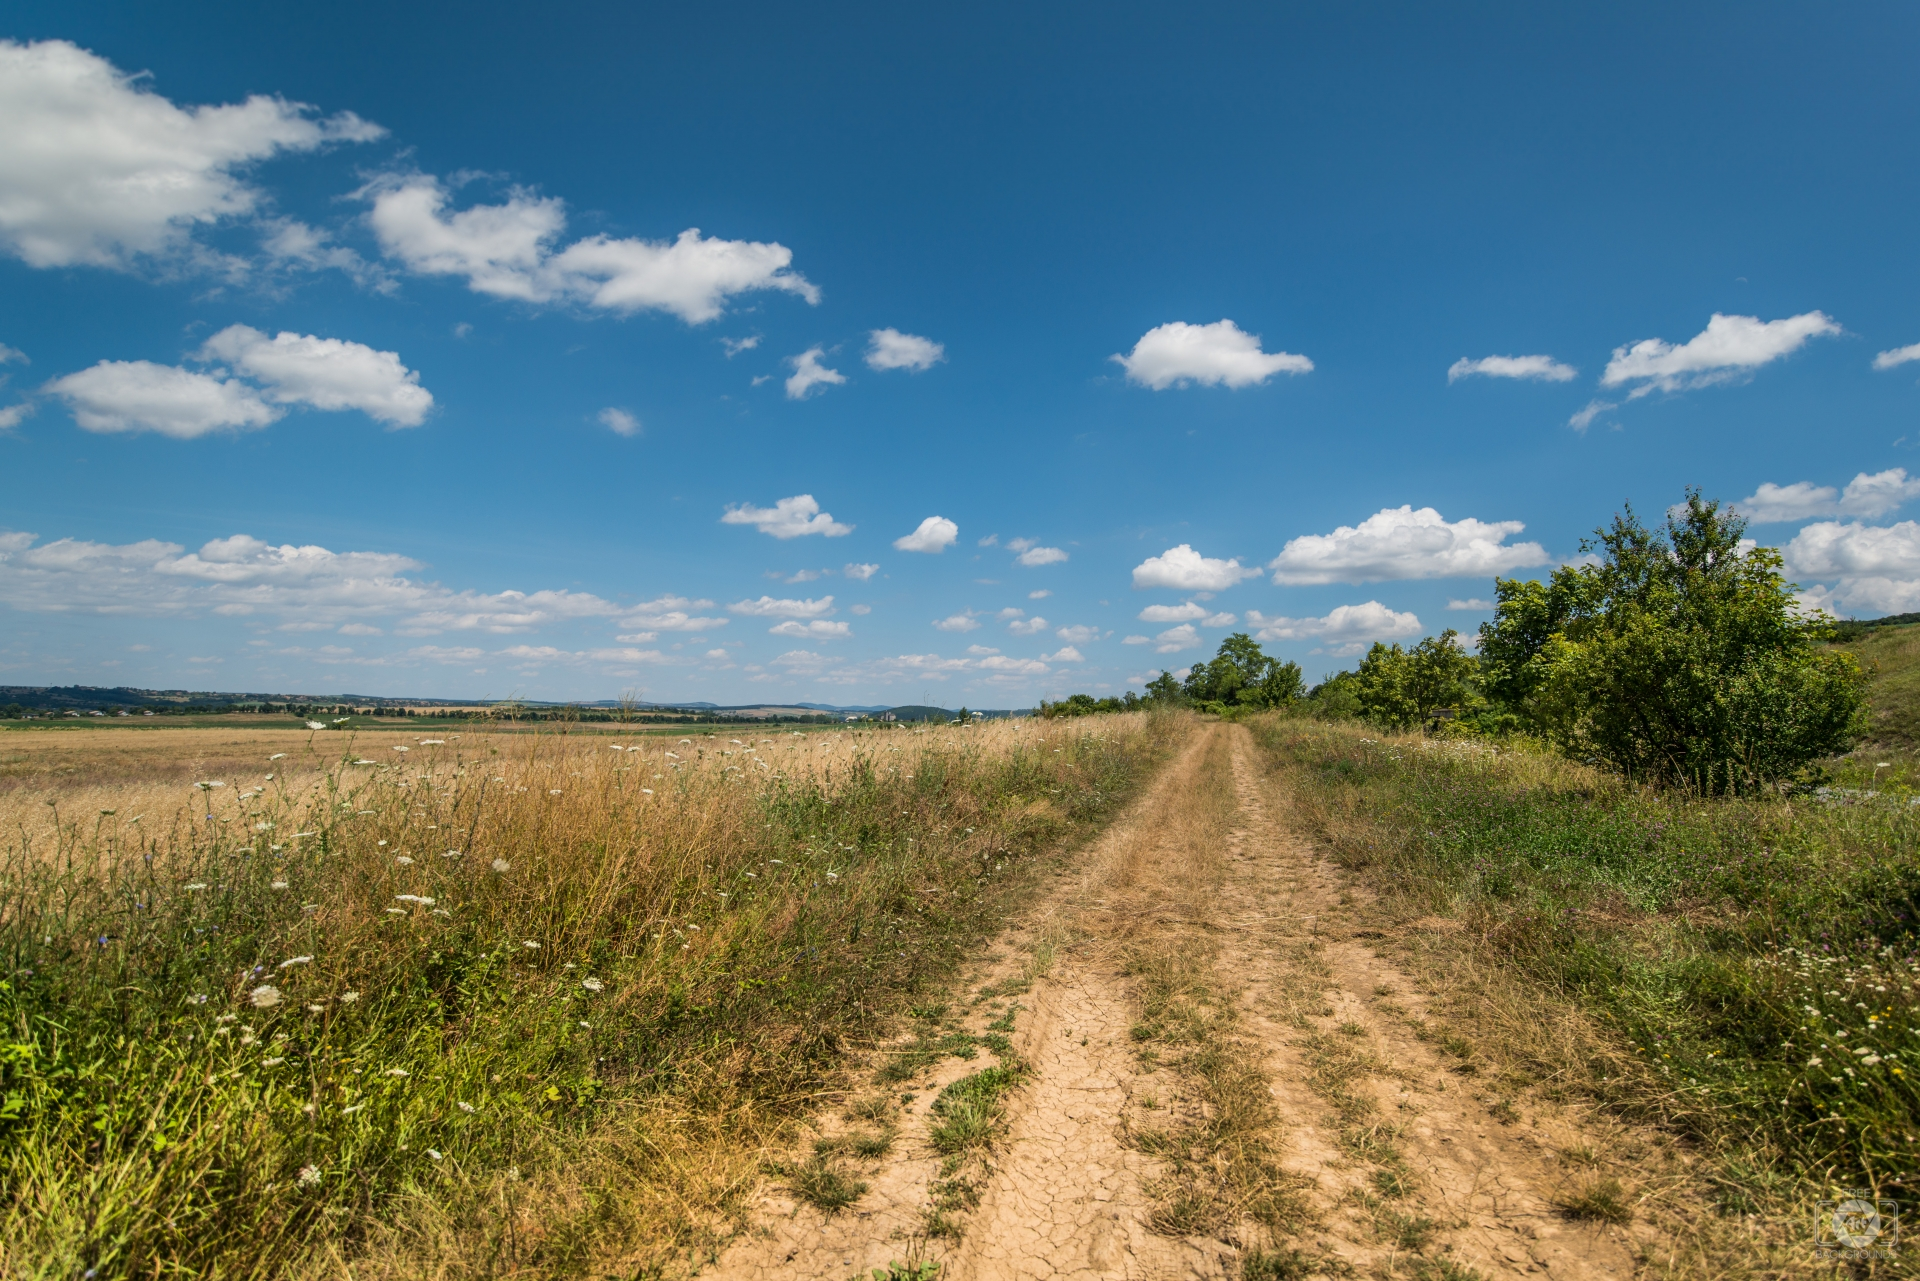 Countryside Dirt Road Background - High-quality Free Backgrounds